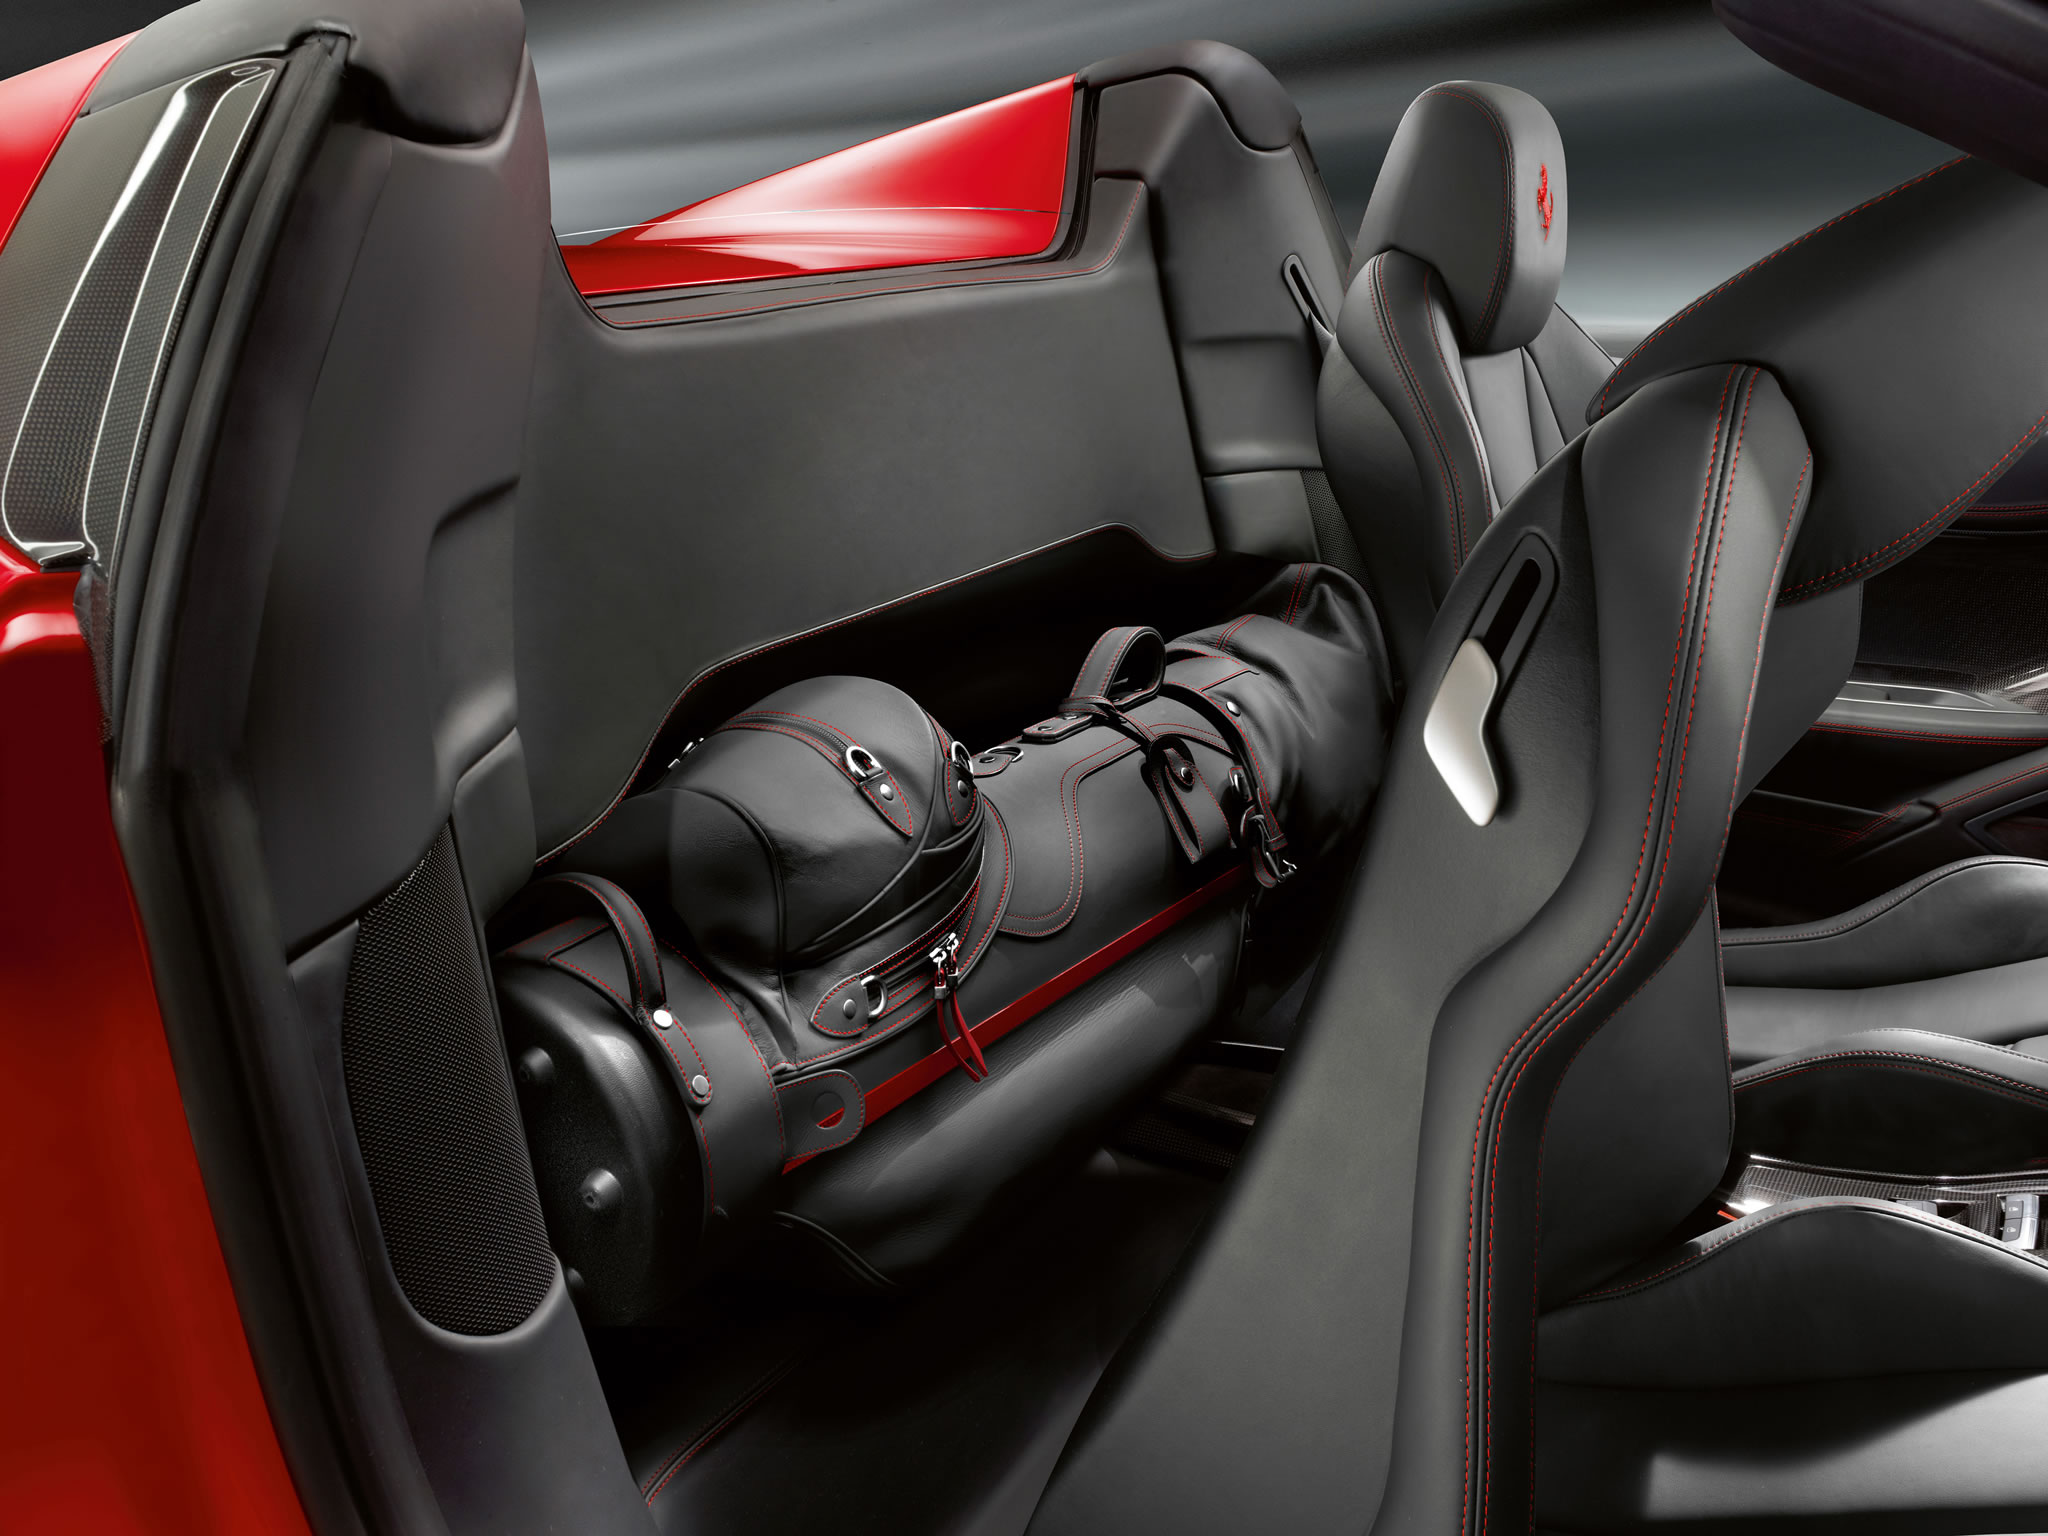 2014 Ferrari 458 Spider - interior - 327.8KB